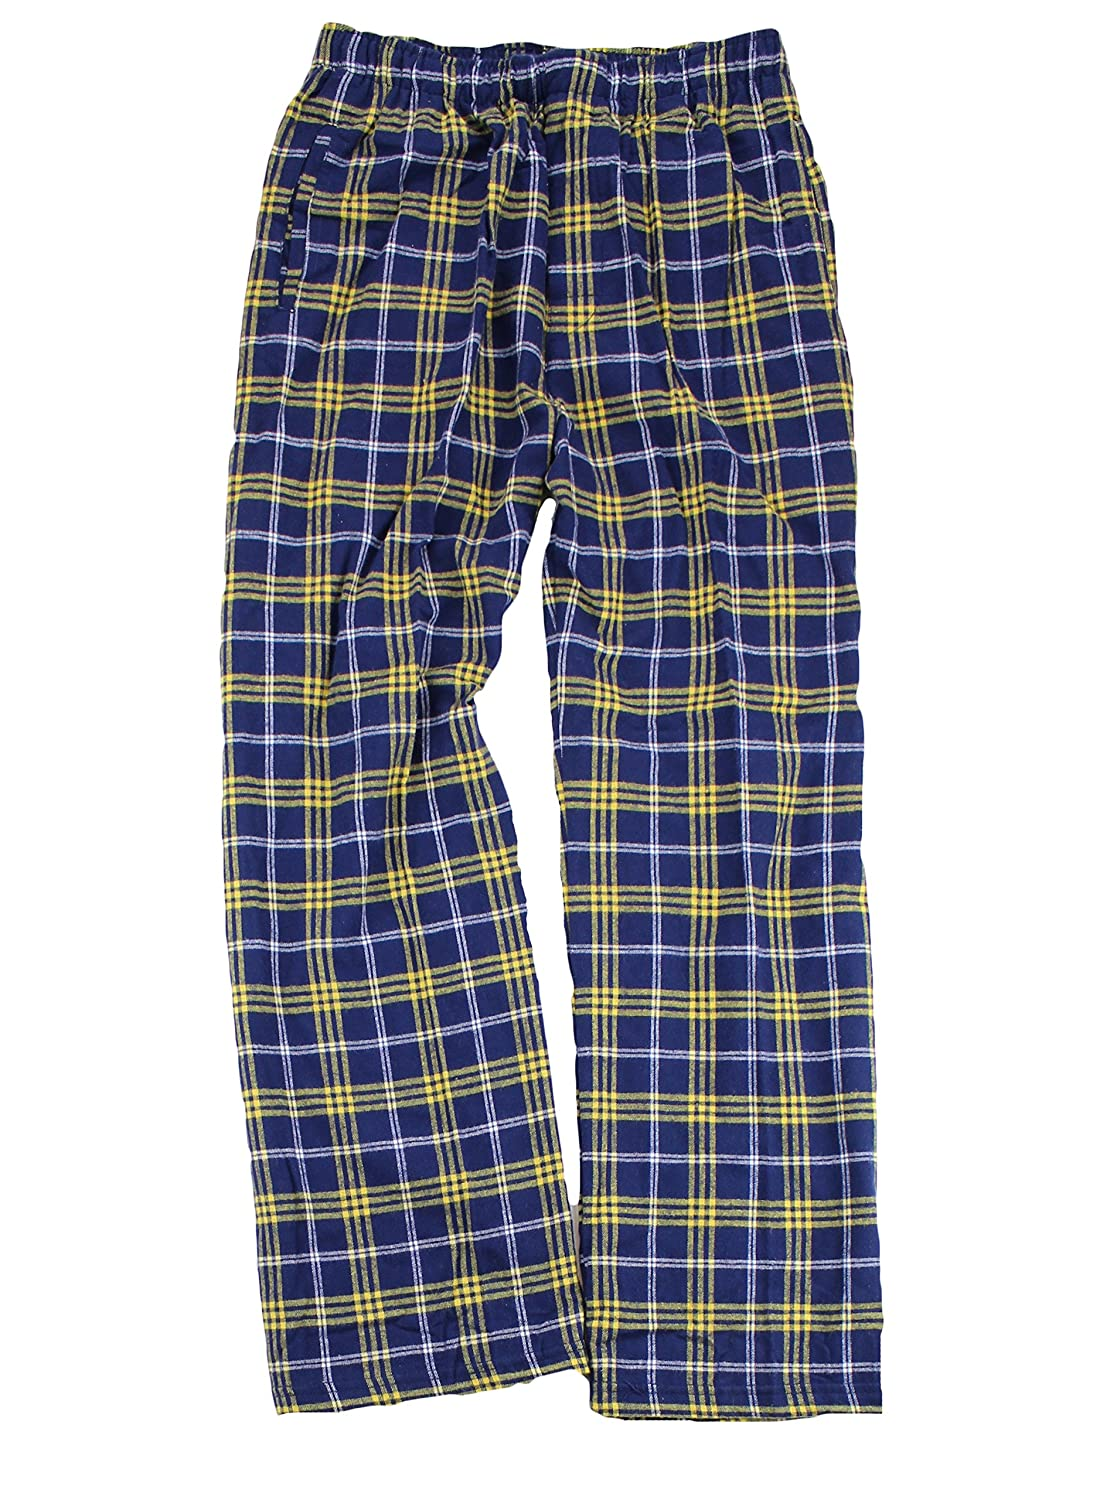 Boxercraft Flannel Pant, Hometown Clothing S-Navy//Gold